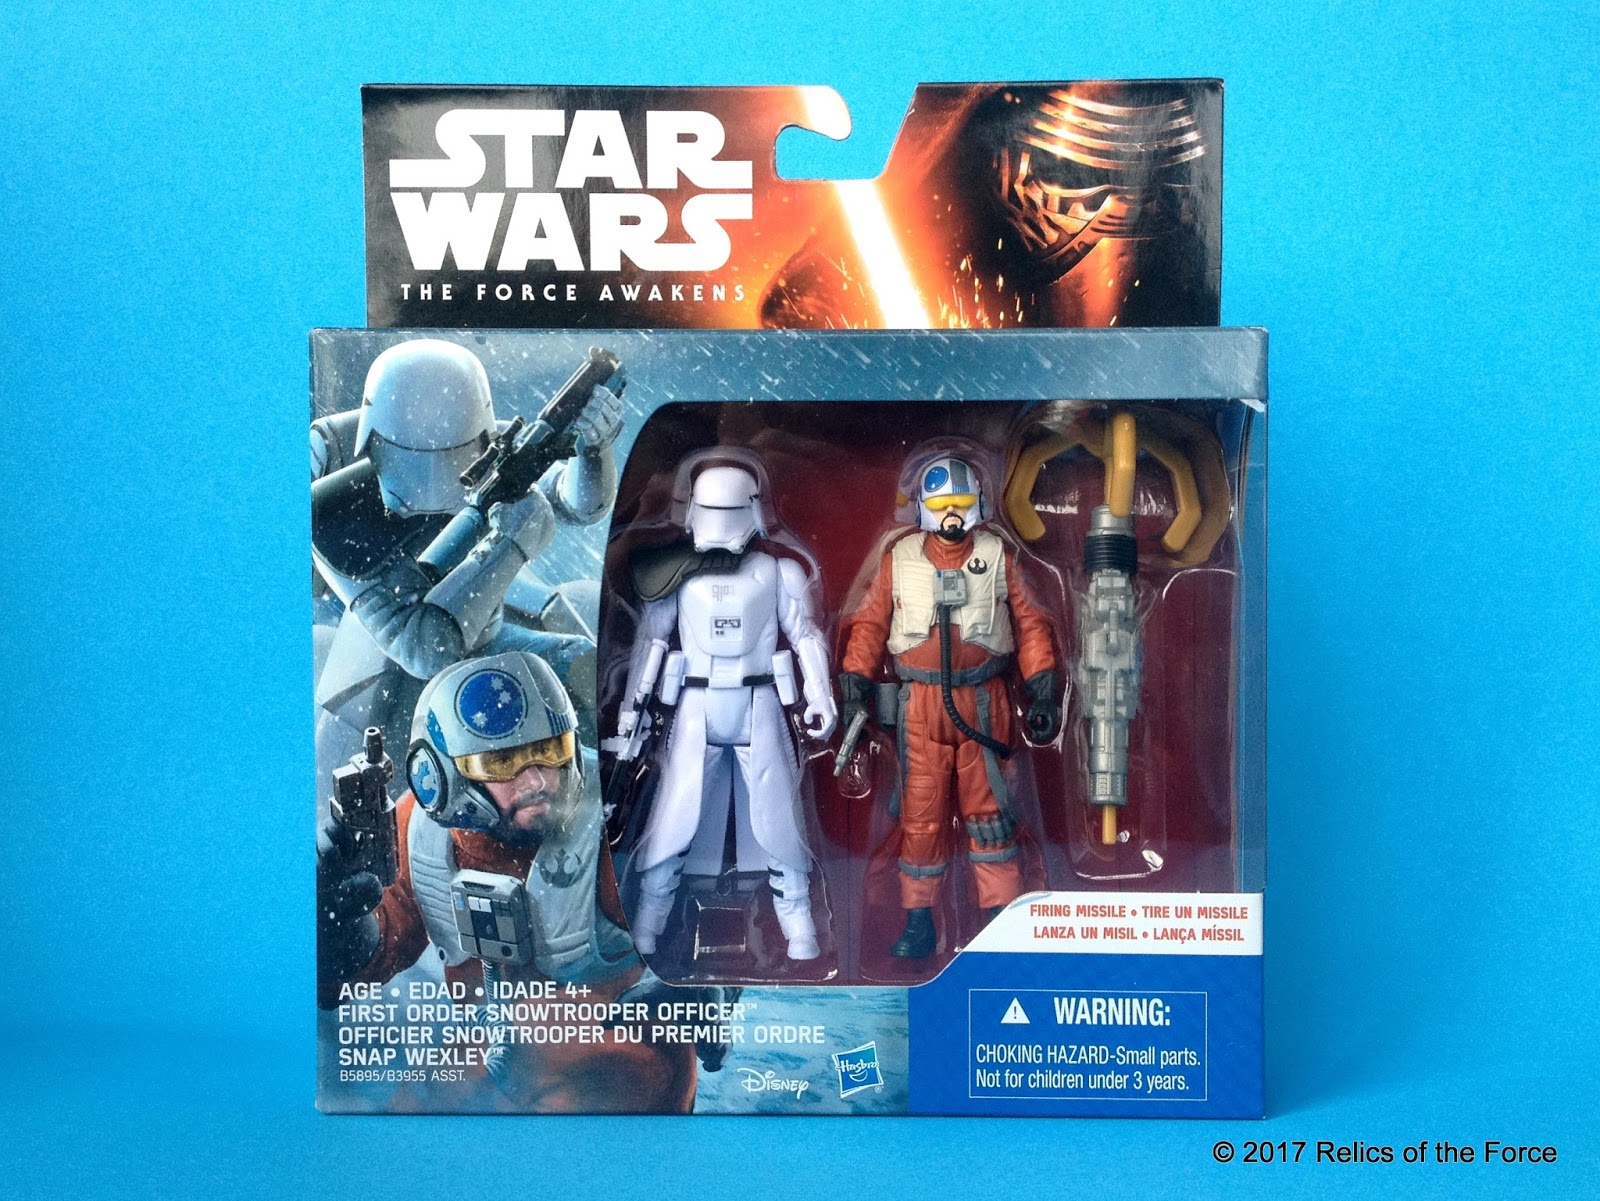 Star Wars The Force Awakens Sidon Ithano /& First Mate Quiggold  Figure 2-Pack